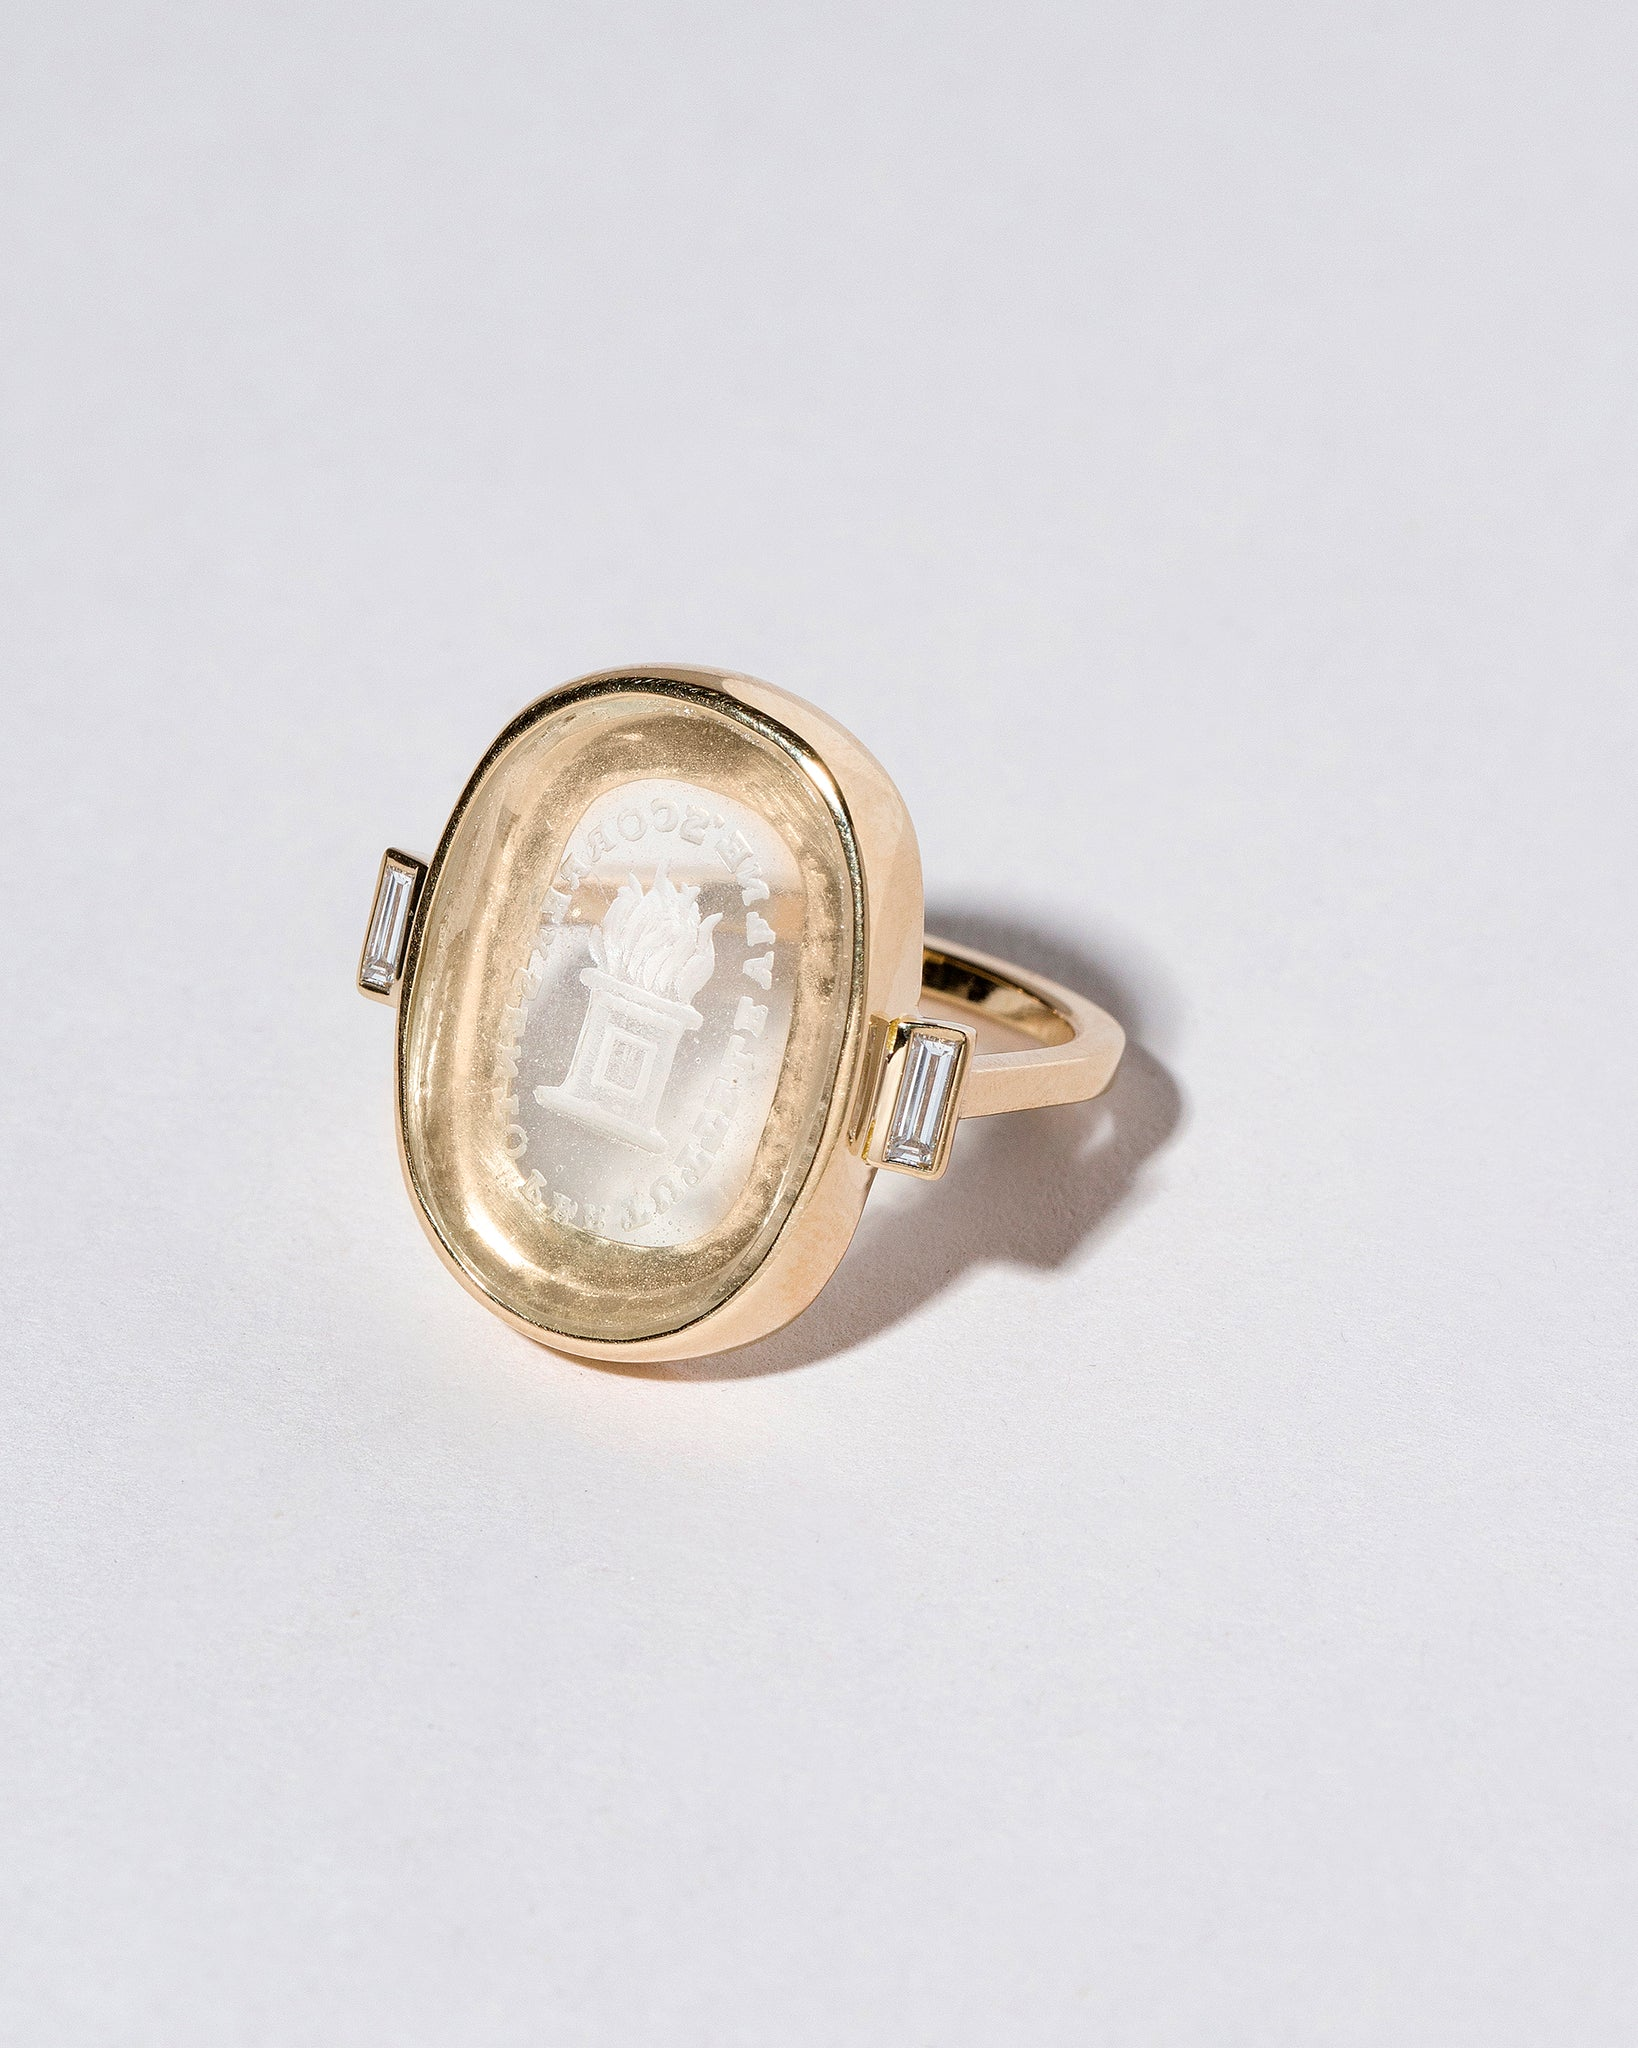 Passion Intaglio Seal Ring on light color background